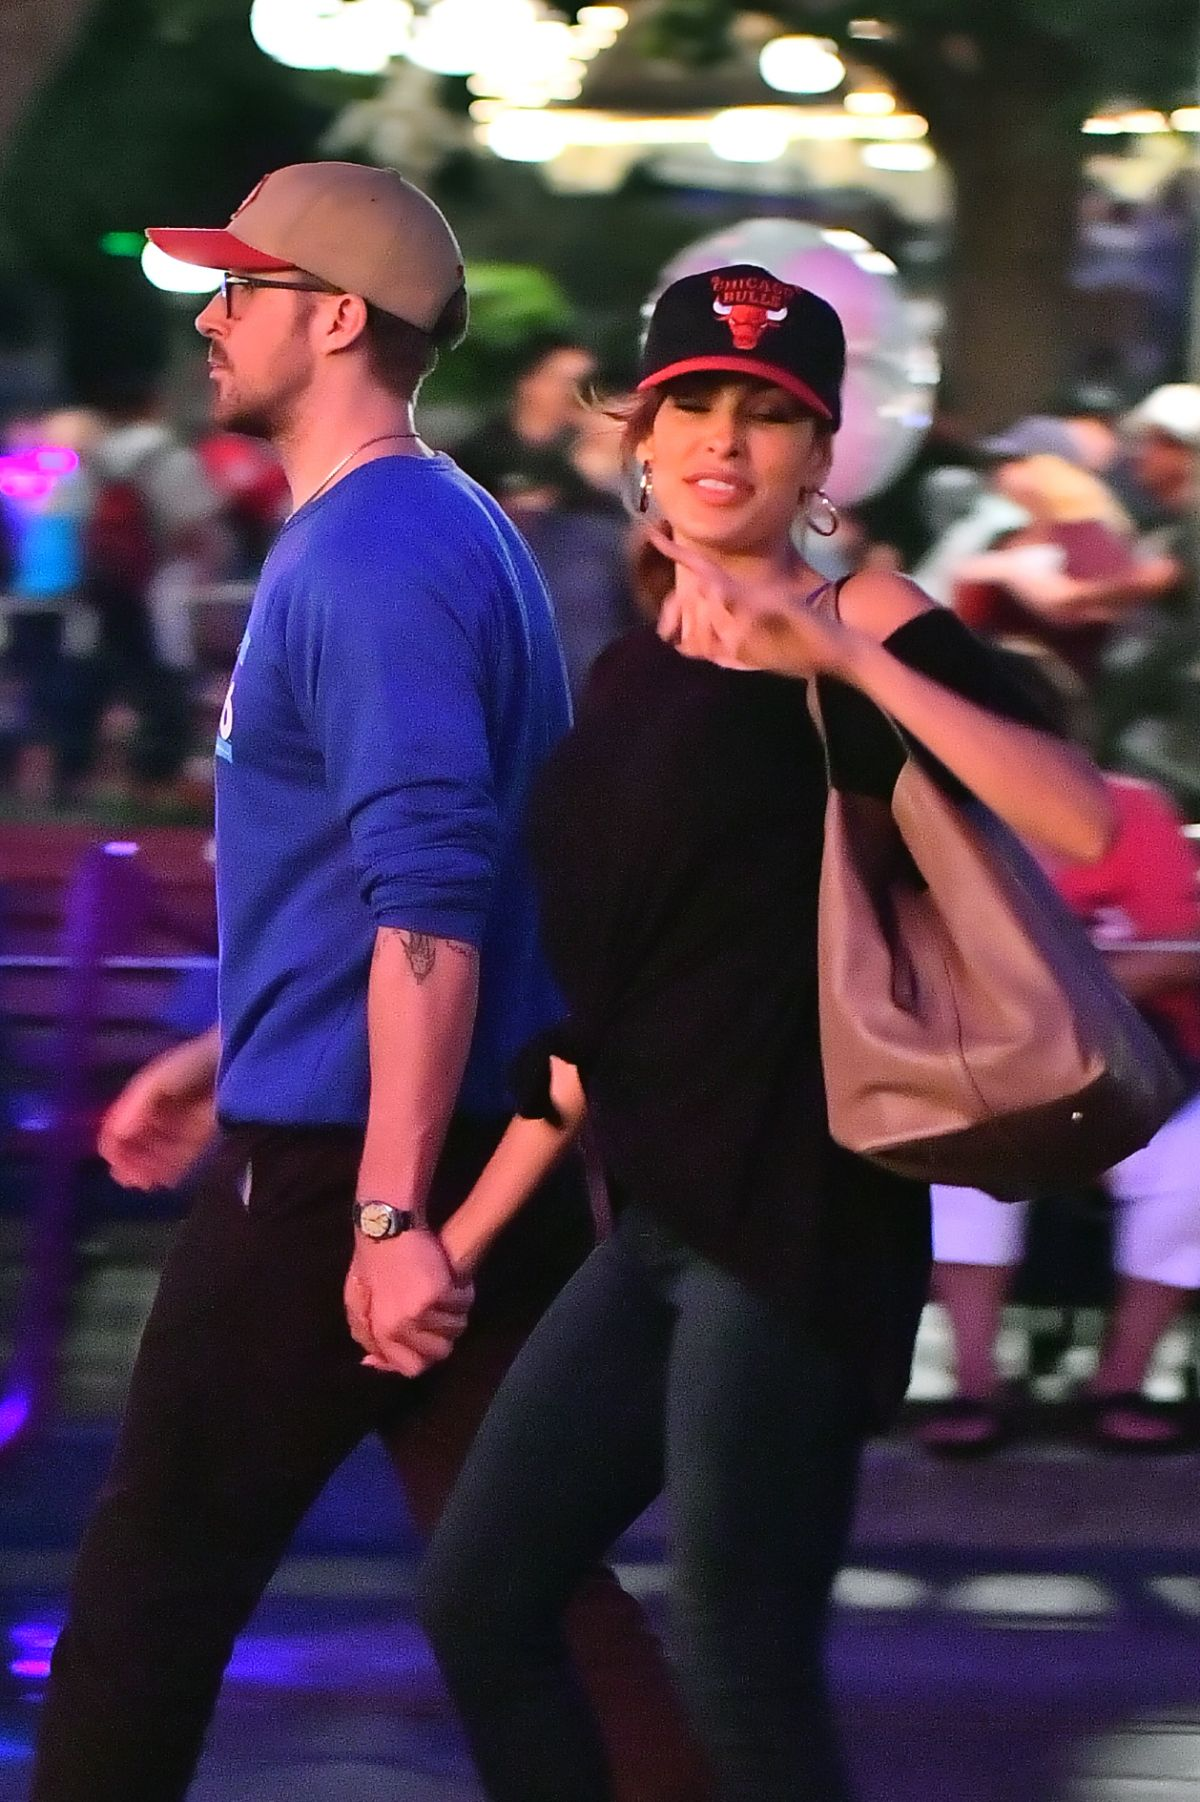 EVA MENDES and Ryan Gosling at Disneyland 08/07/2017